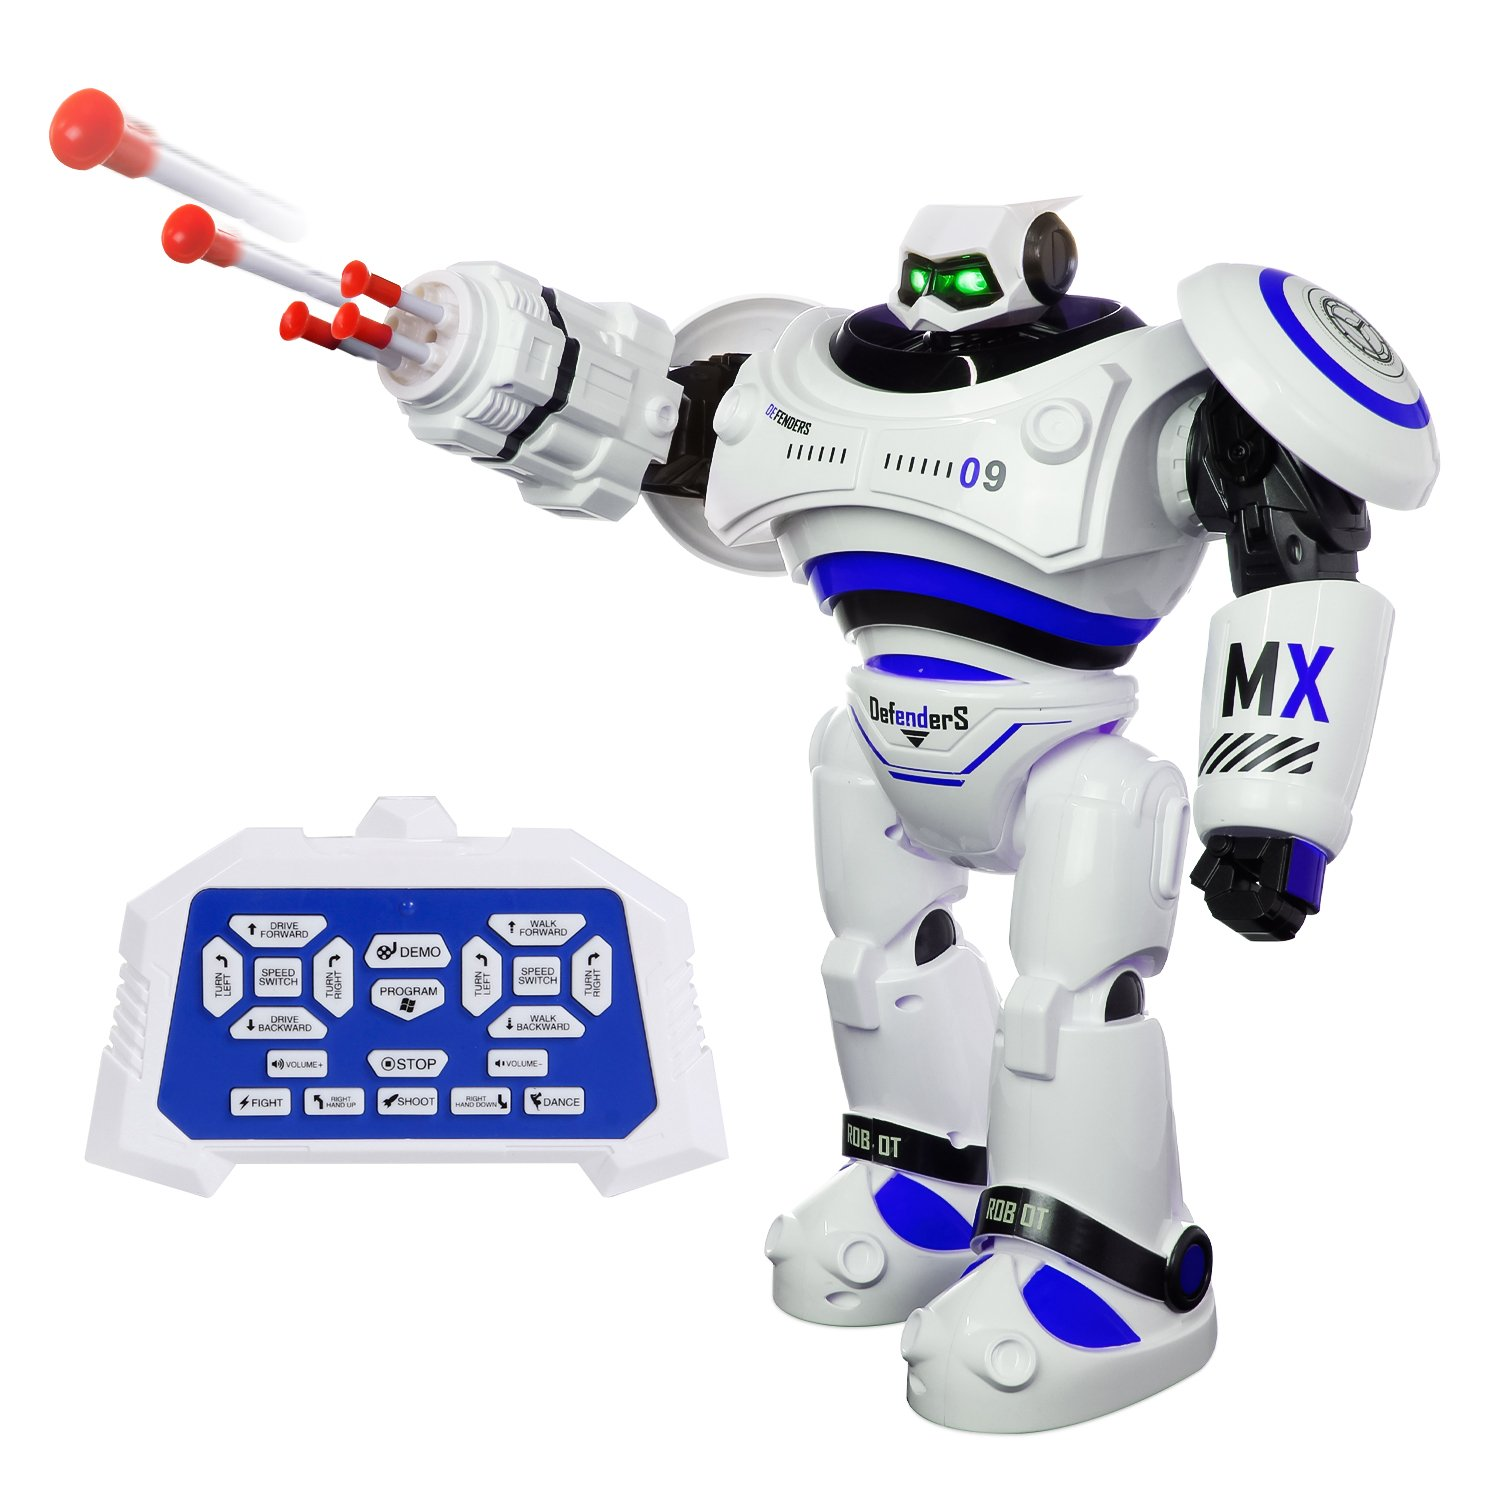 Large Robot Toy, Remote Control RC Combat Fighting Robot for Kids Birthday Present Gift, Dancing Shooting Infrared Sensing Robot for Kids Boy Girl